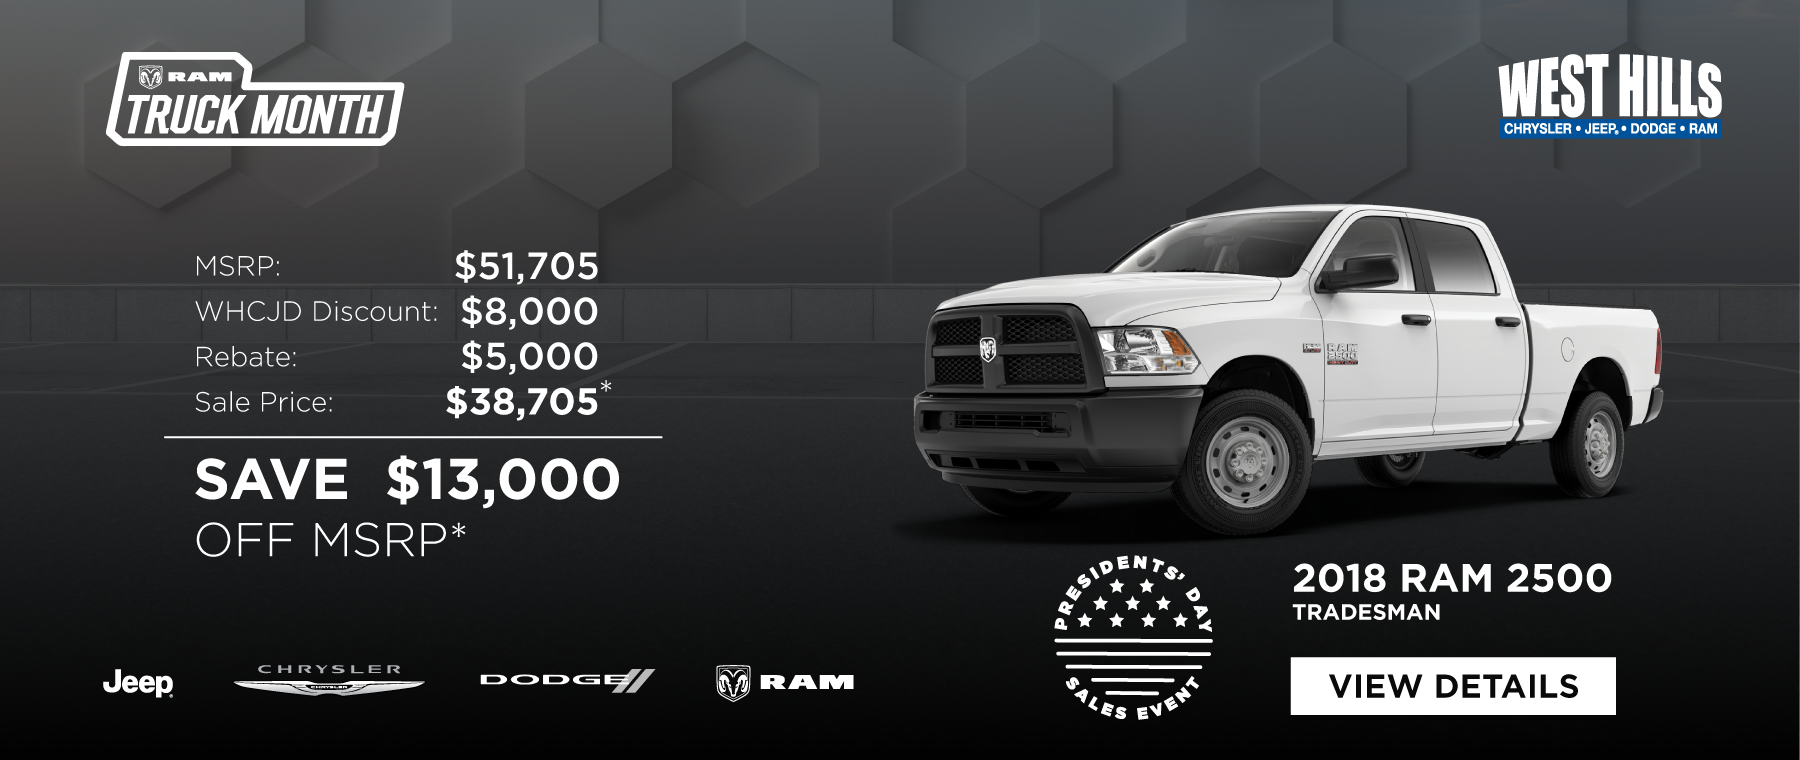 2018 RAM 2500 Tradesman MSRP: $51,705 SAVE $13,000 OFF MSRP*  *Offer valid on 2018 RAM 2500 Tradesman. VIN: 3C6UR4CLXJG336134. MSRP $51,705. WHCJDR Discount $8,000. Rebate of $5,000. Sale Price of $38,705. Based on approval of program ID: 70CJ1, 45CJA3, 45CJA4, 45CKB1, 45CKB2, WECJA1, WECJ1X, 39CJJ. Subject to credit approval. Down payment and monthly payment may vary. Excludes taxes, tags, registration and title, insurance and dealer charges. A negotiable dealer documentary service fee of up to $150 may be added to the sale price or capitalized cost. Exp. 2/28/2019.